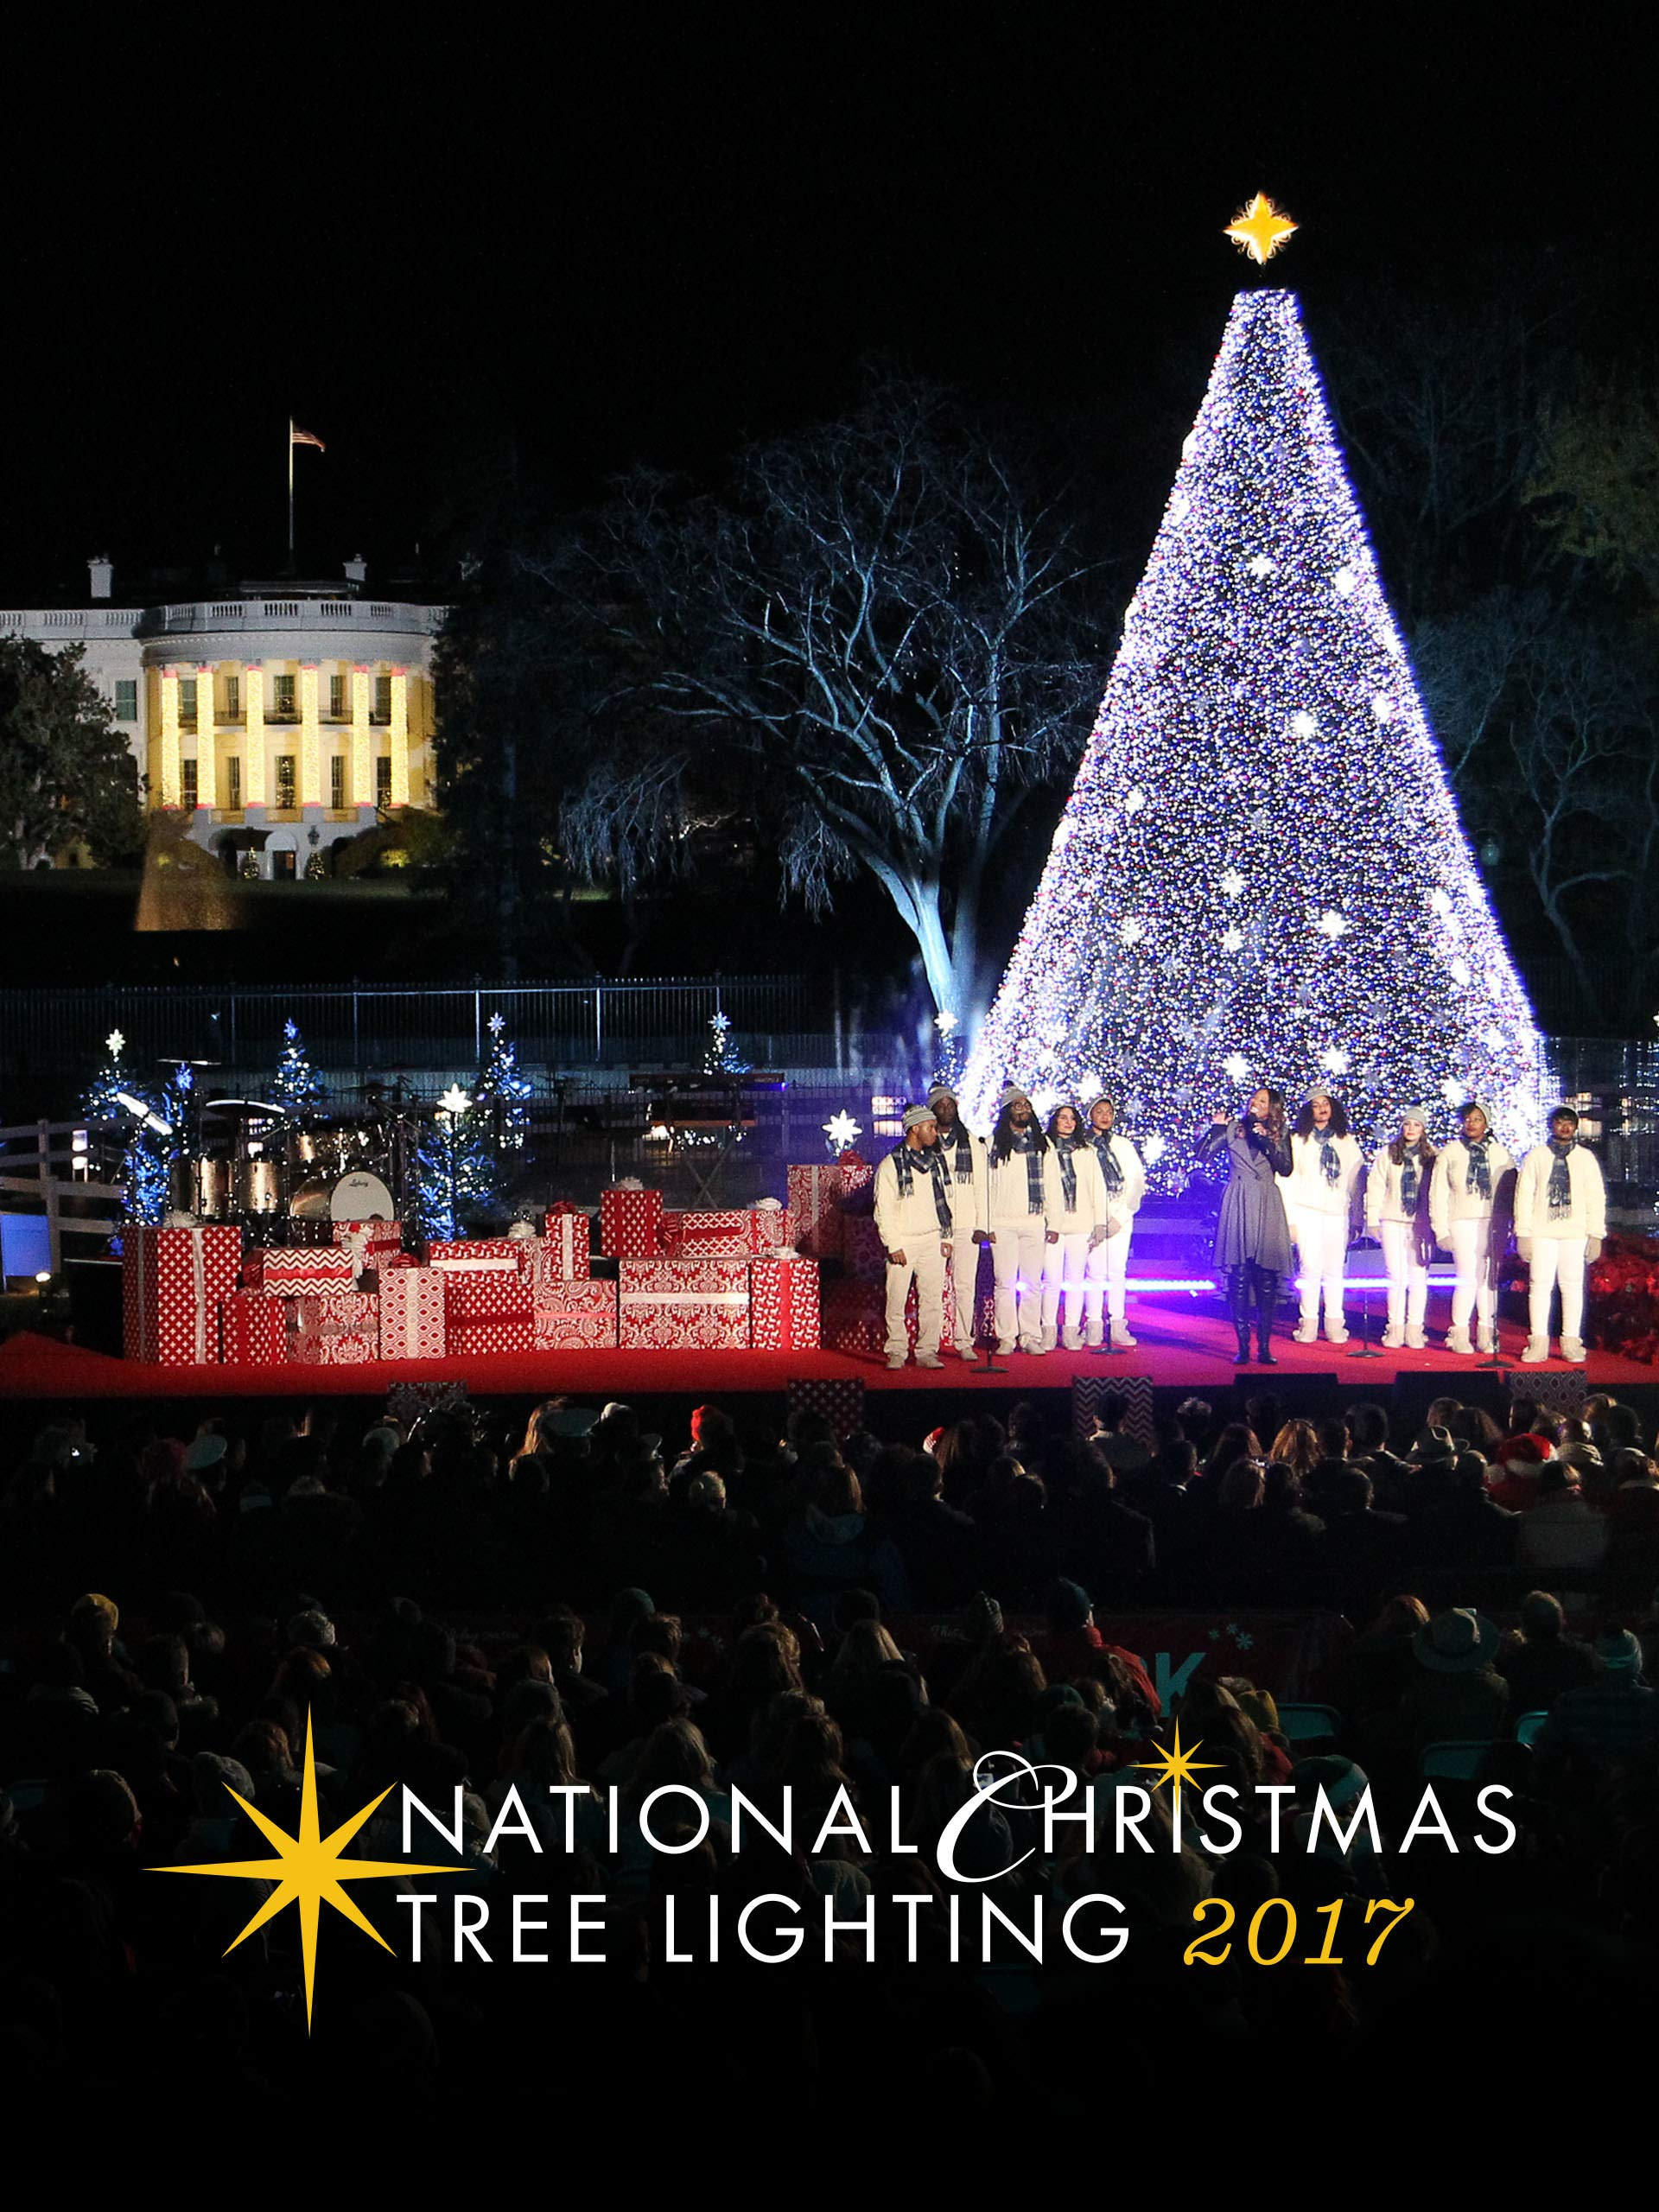 National Christmas Tree Lighting.Amazon Com National Christmas Tree Lighting Hallmark Channel